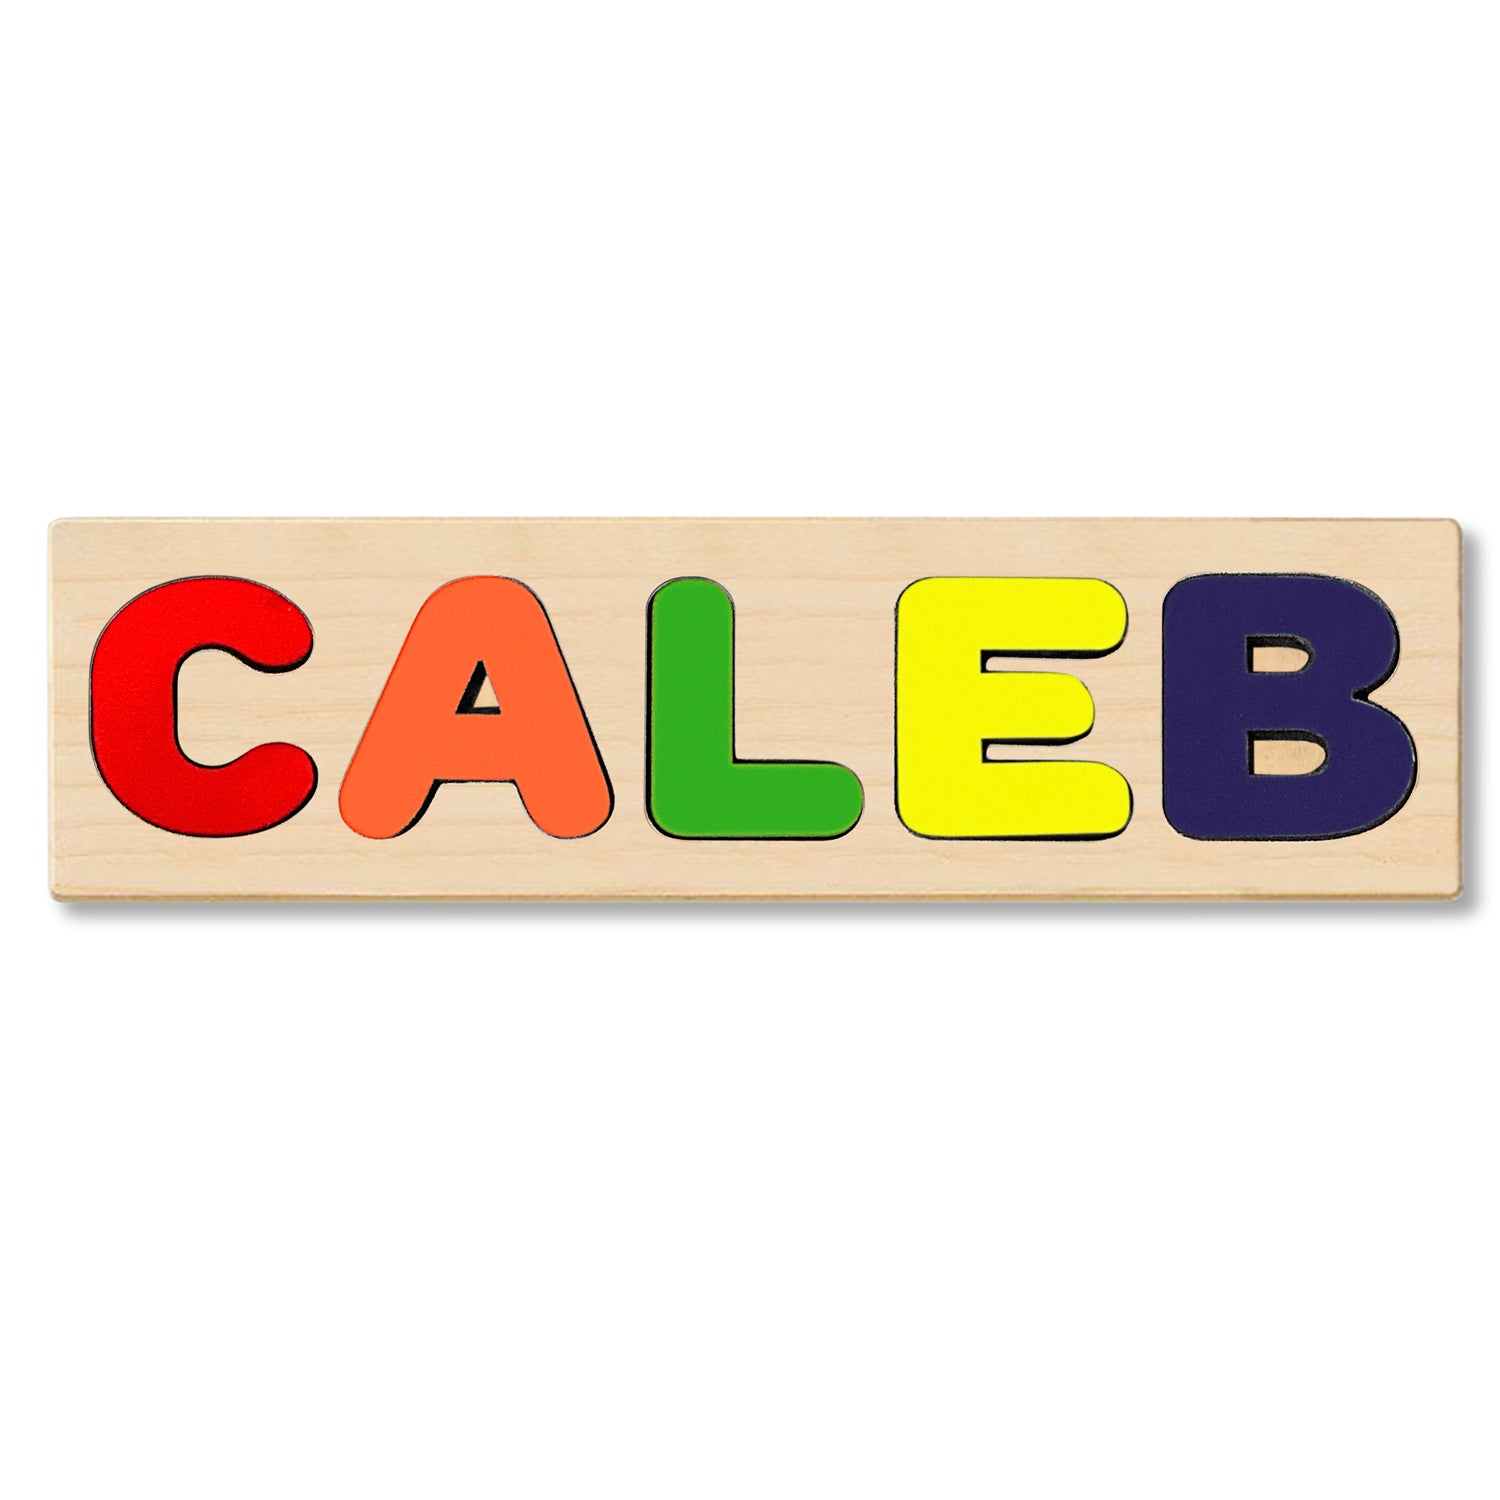 Wooden Personalized Name Puzzle - Any Name Or First & Last Name Choose up to 12 Letters No Extra Cost - CALEB